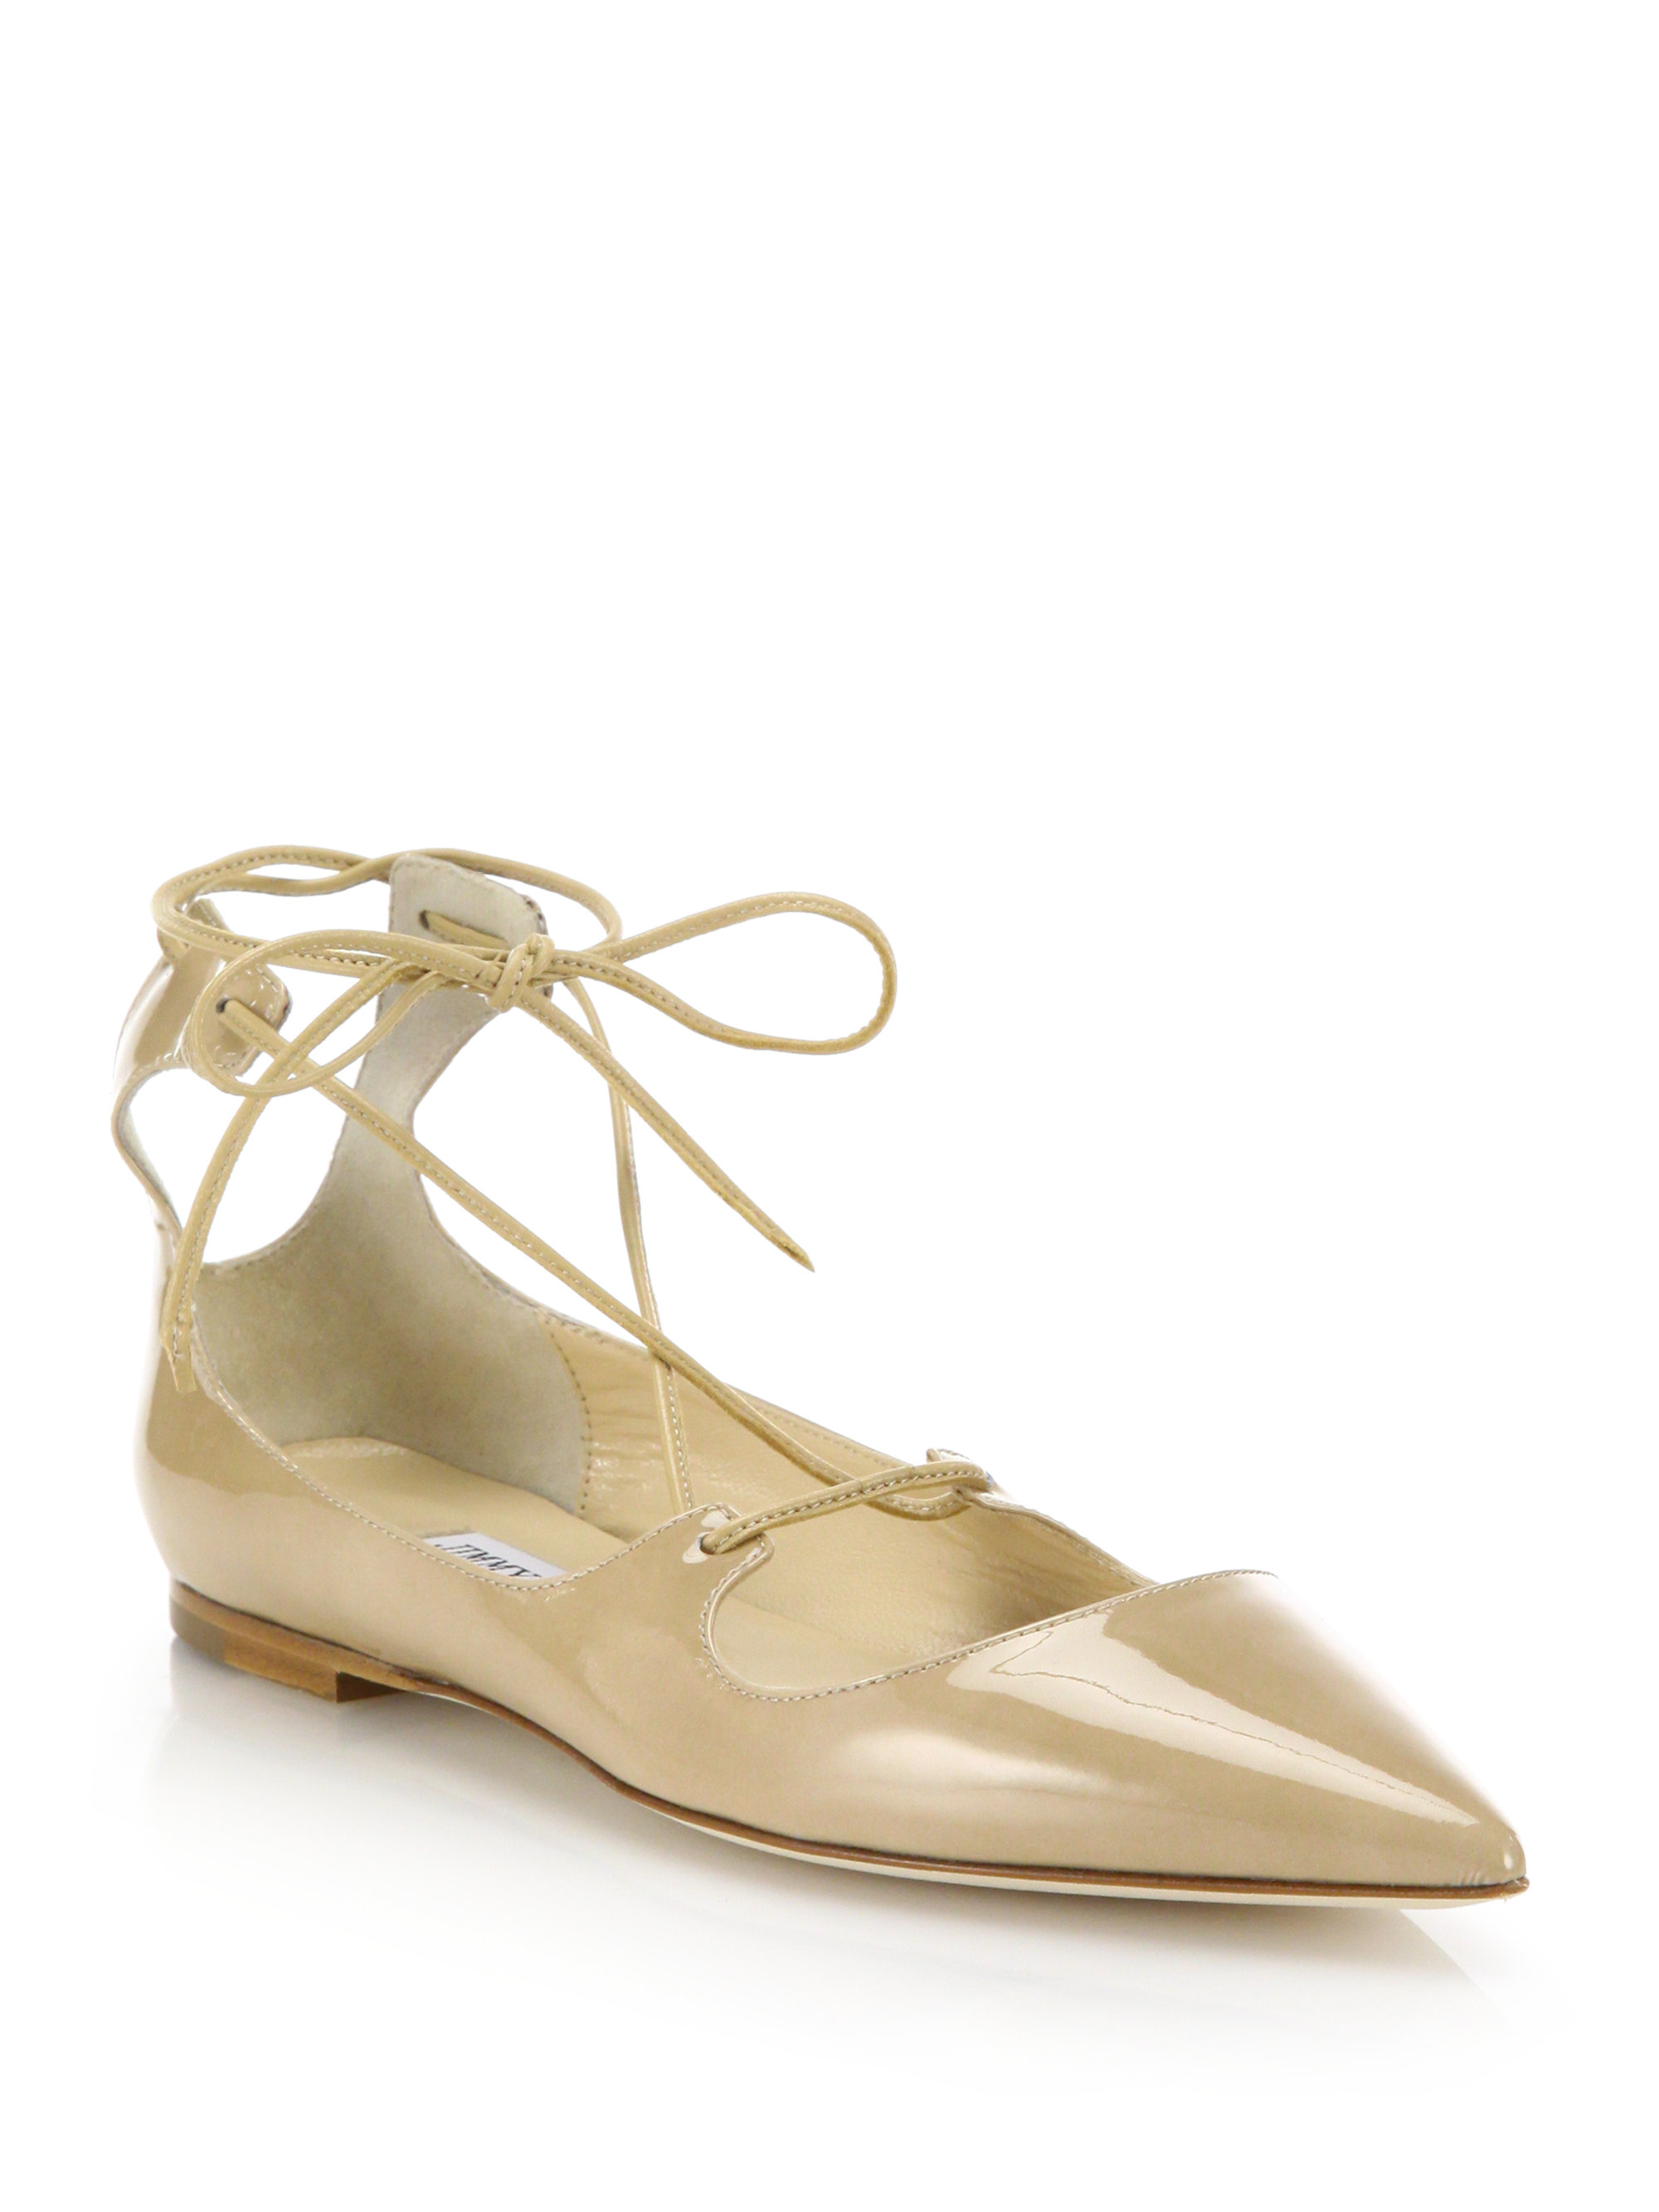 57ca4c030dc9 ... low price lyst jimmy choo vita patent leather flats in natural 3dc9e  bb2ed